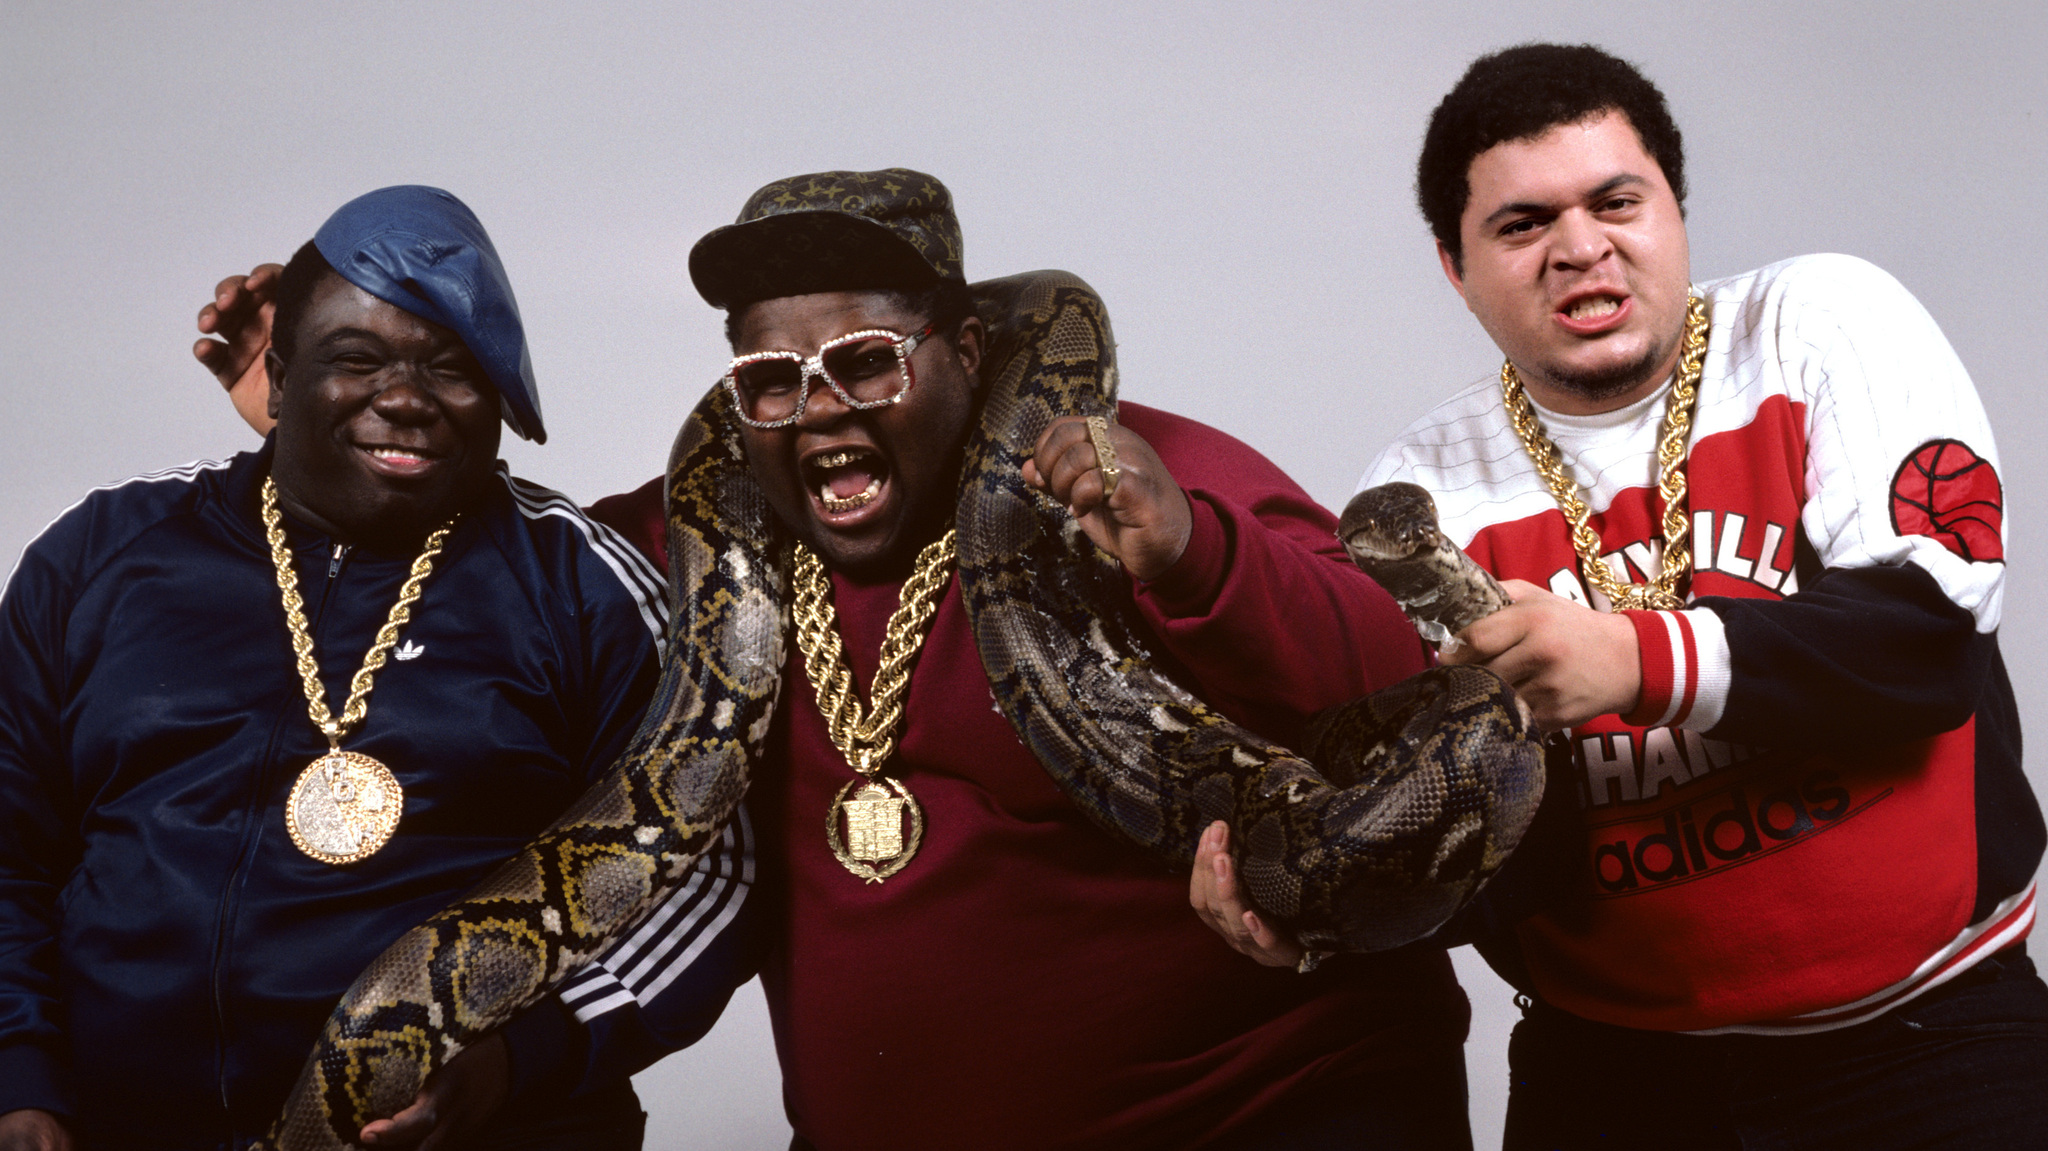 Photo: The Fat Boys